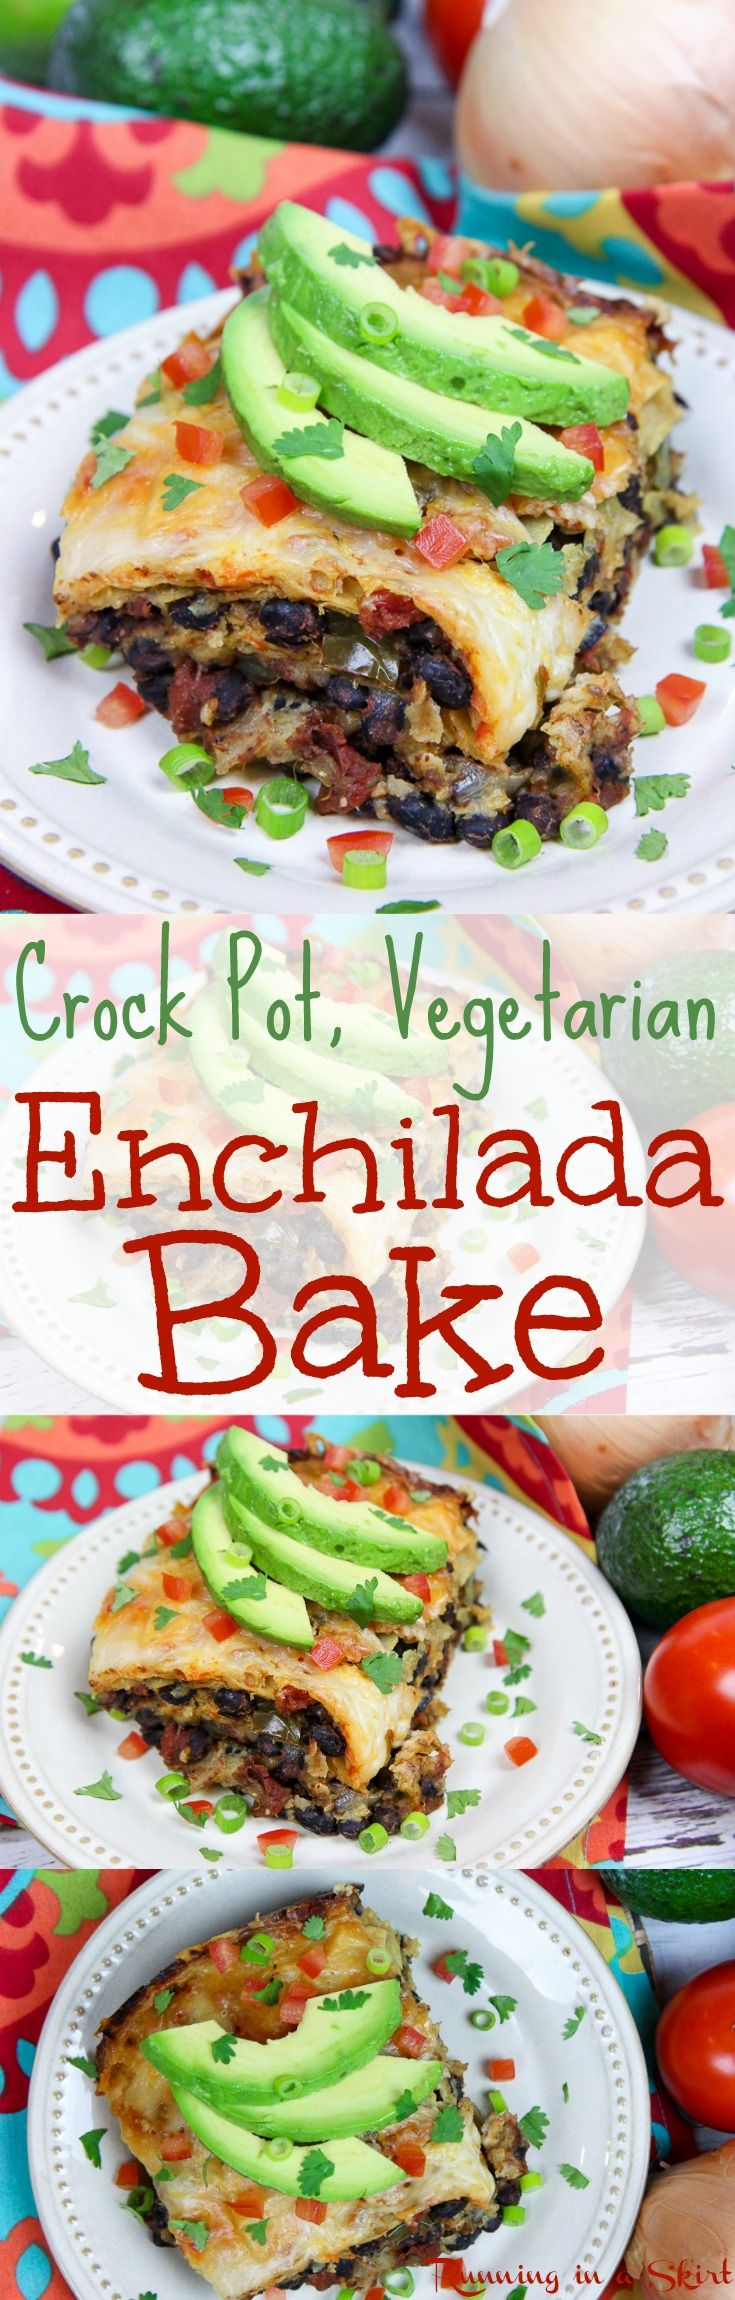 Crock pot vegetarian black bean enchilada stack for Crock pot vegetarian recipes healthy